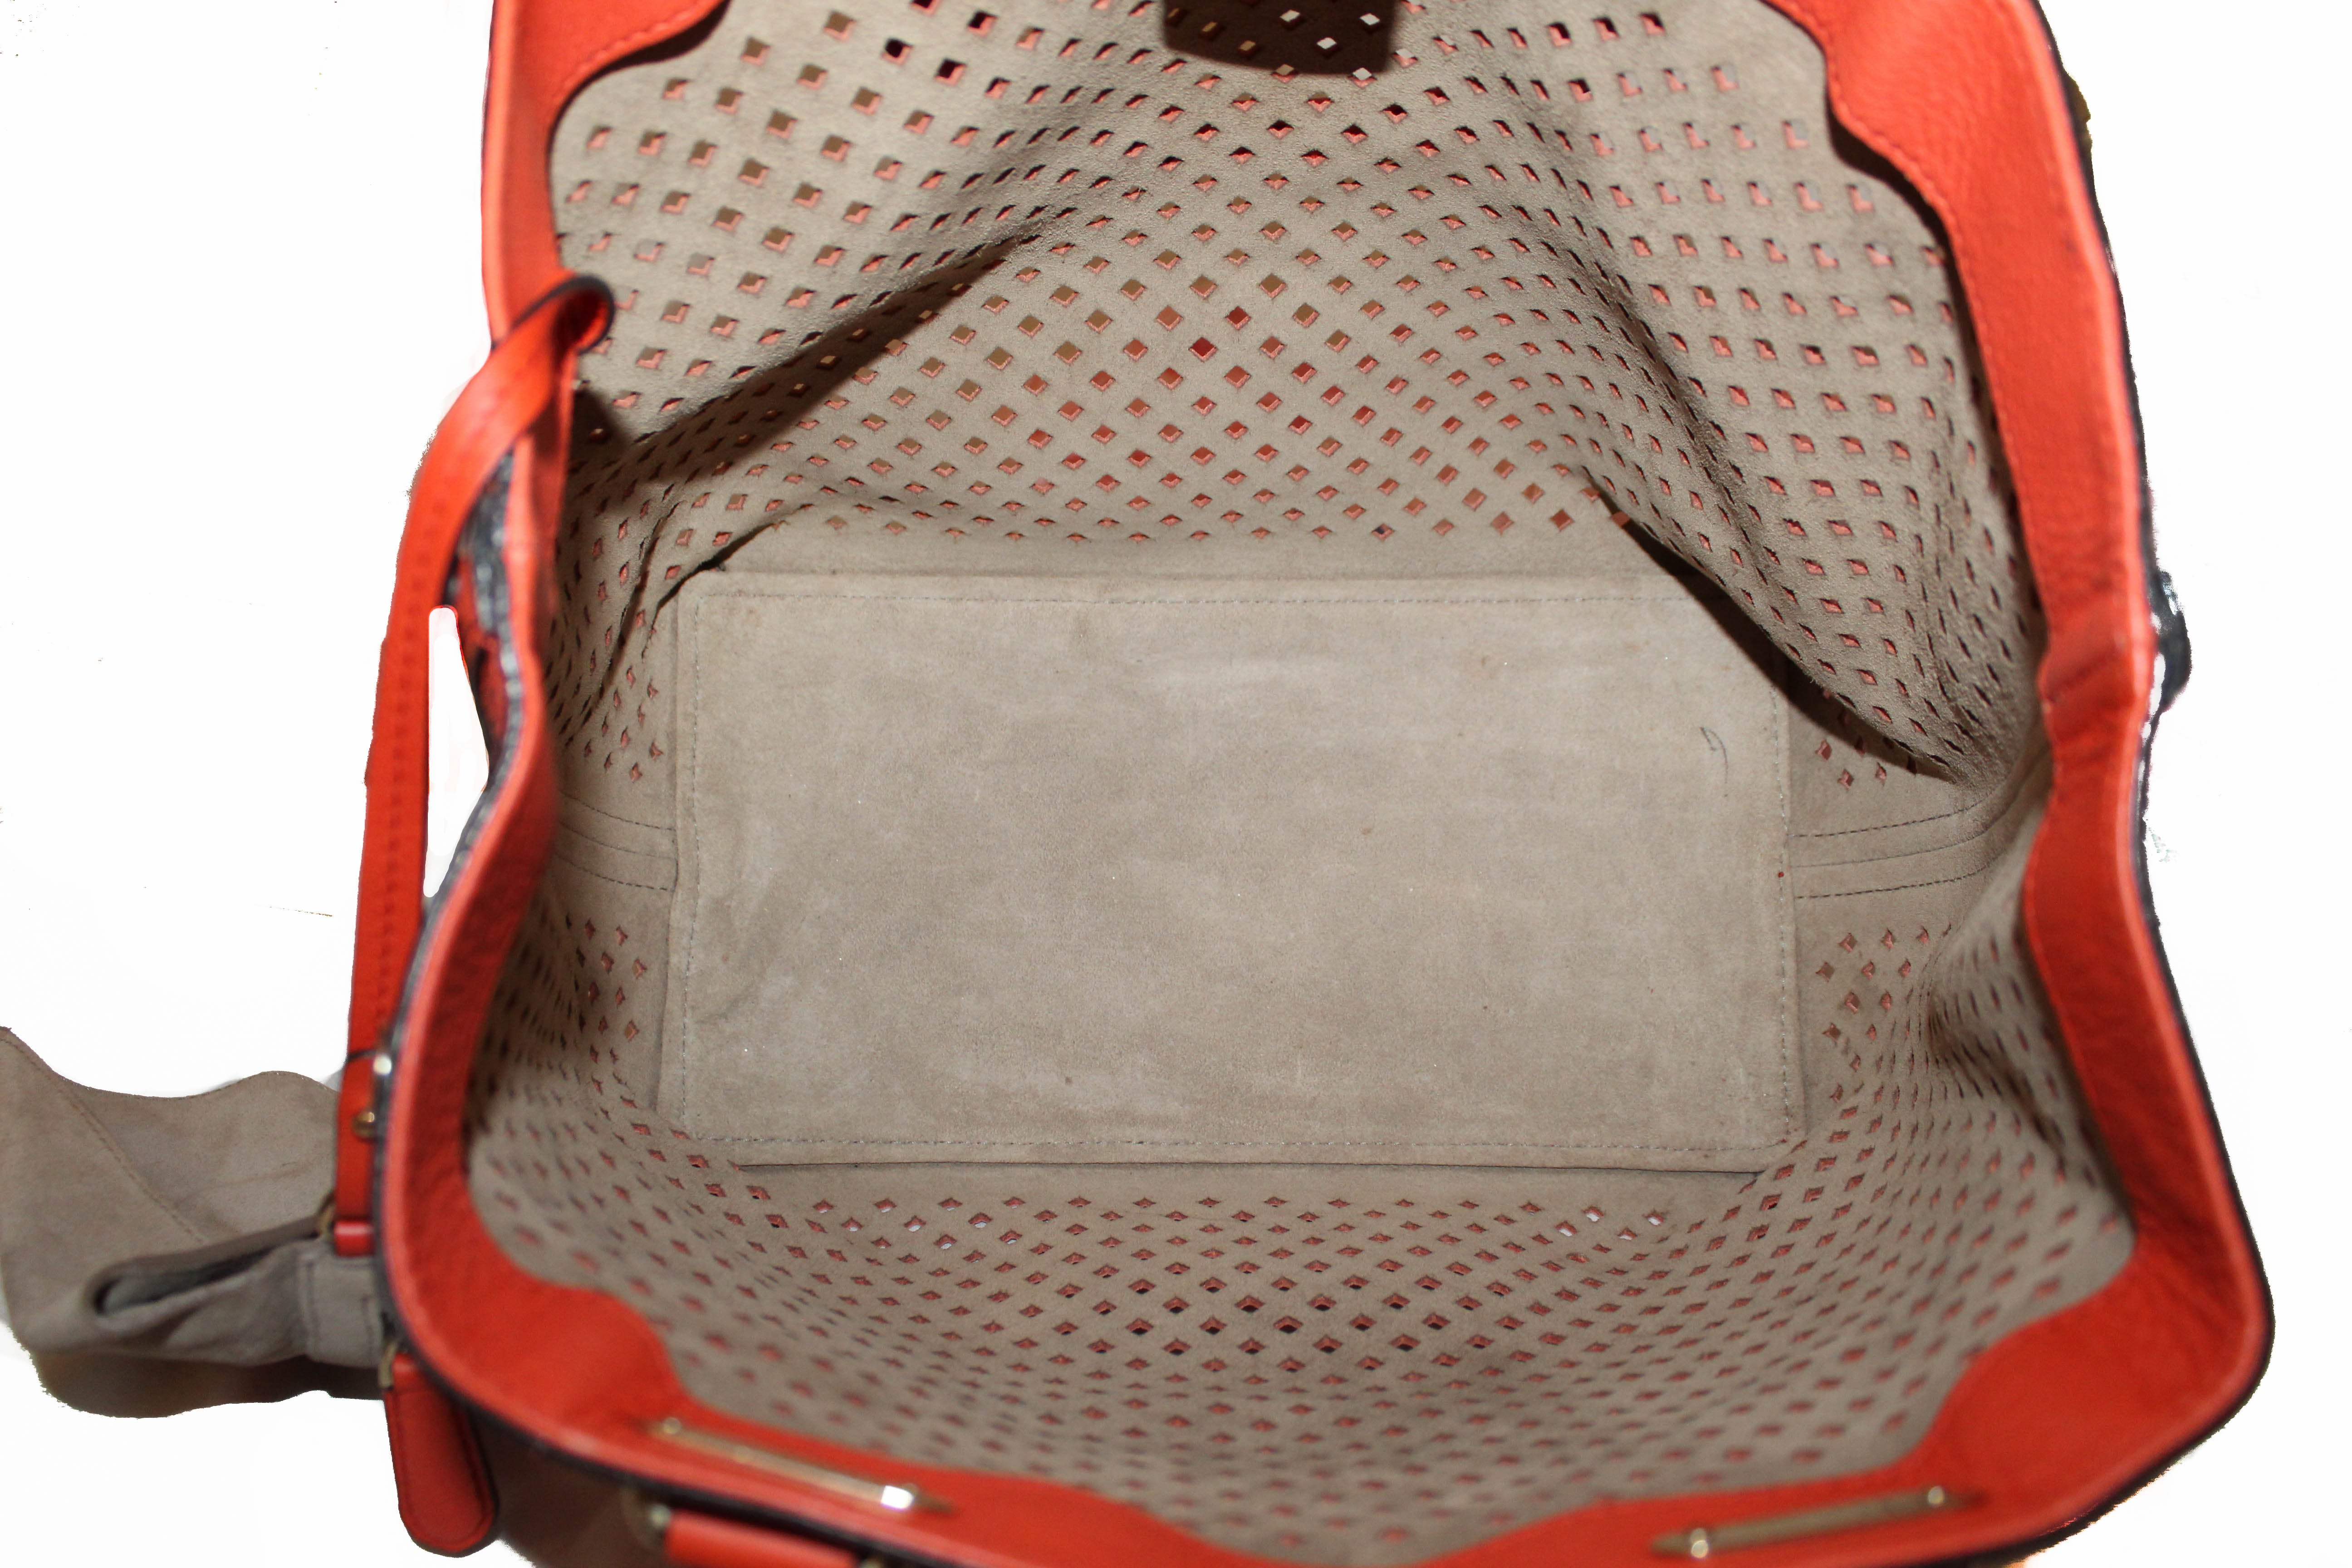 Authentic Bally Orange Leather Piaffel Perforated Tote Bag